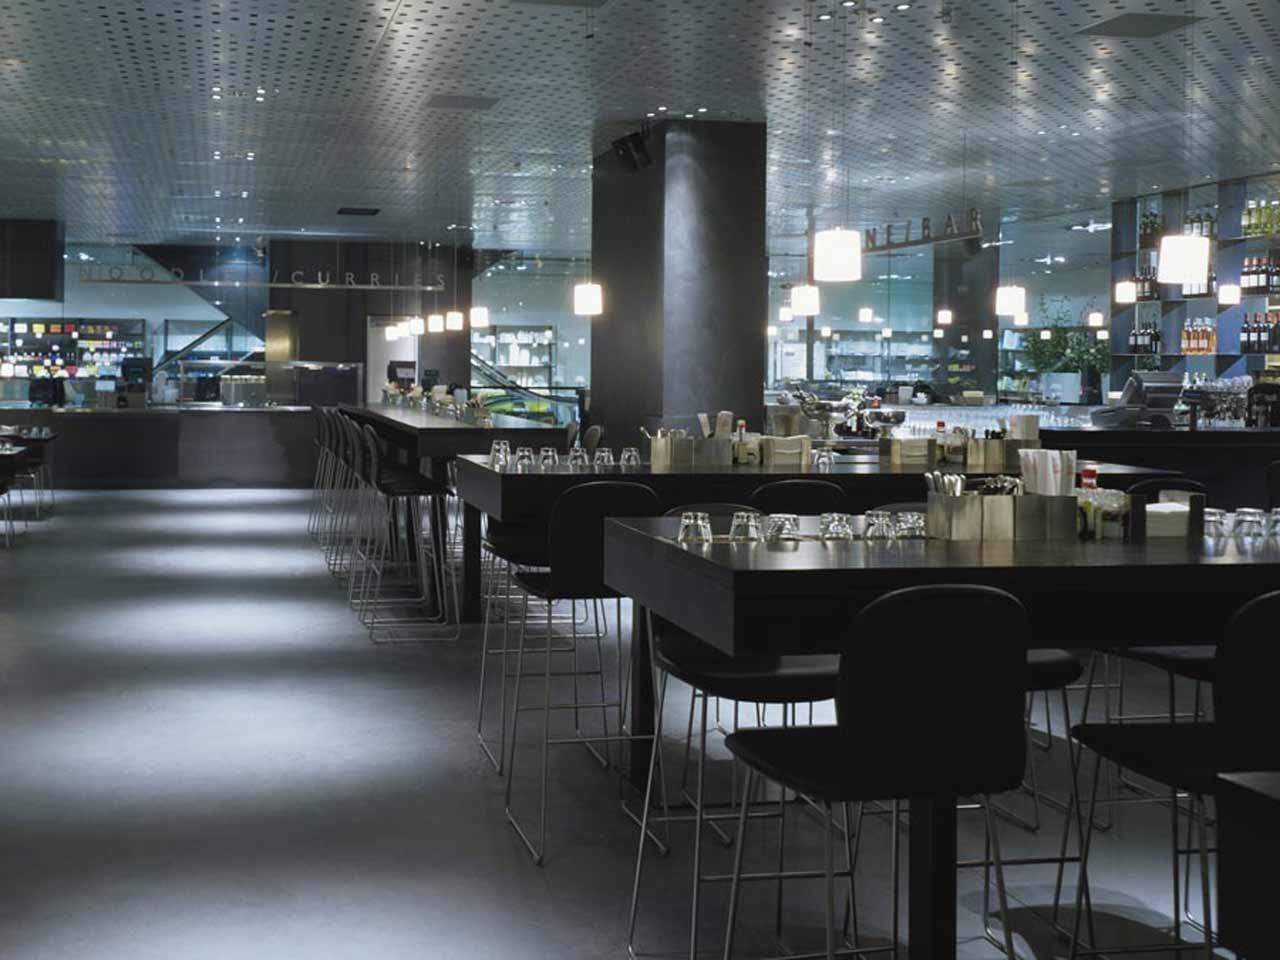 Globus Zurich Bellevue Restaurant Food Hall